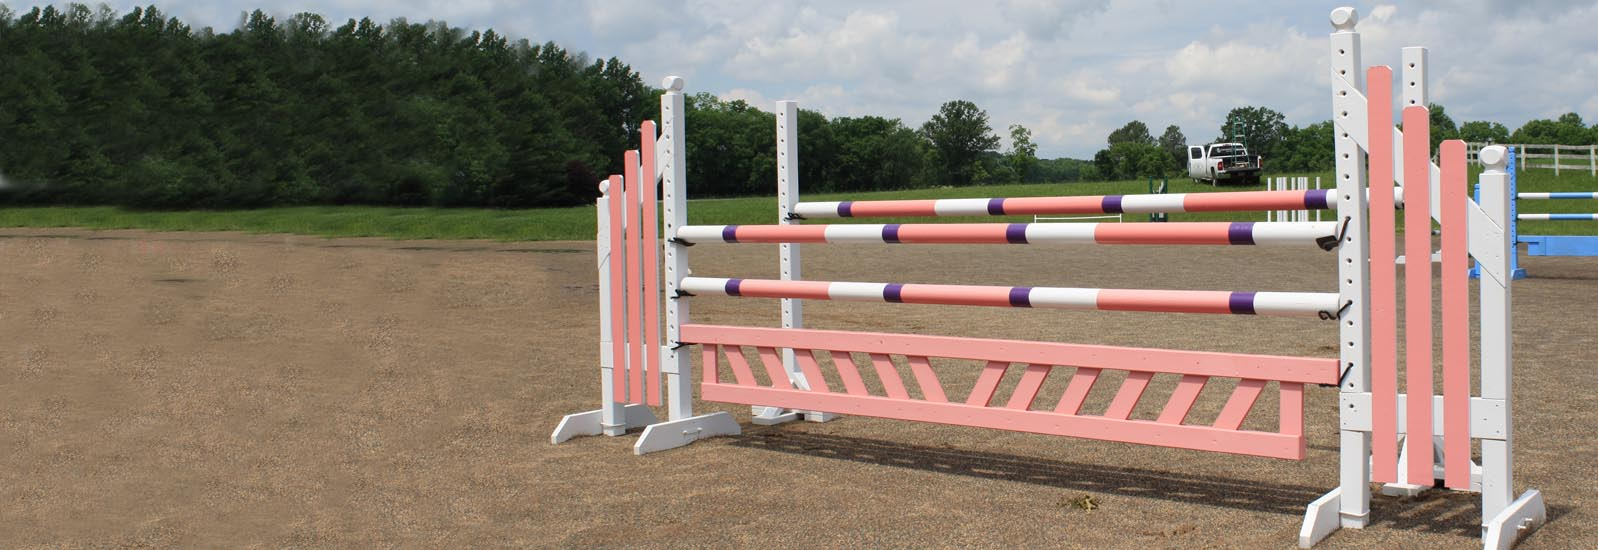 horse jump with poles, standards, and gate